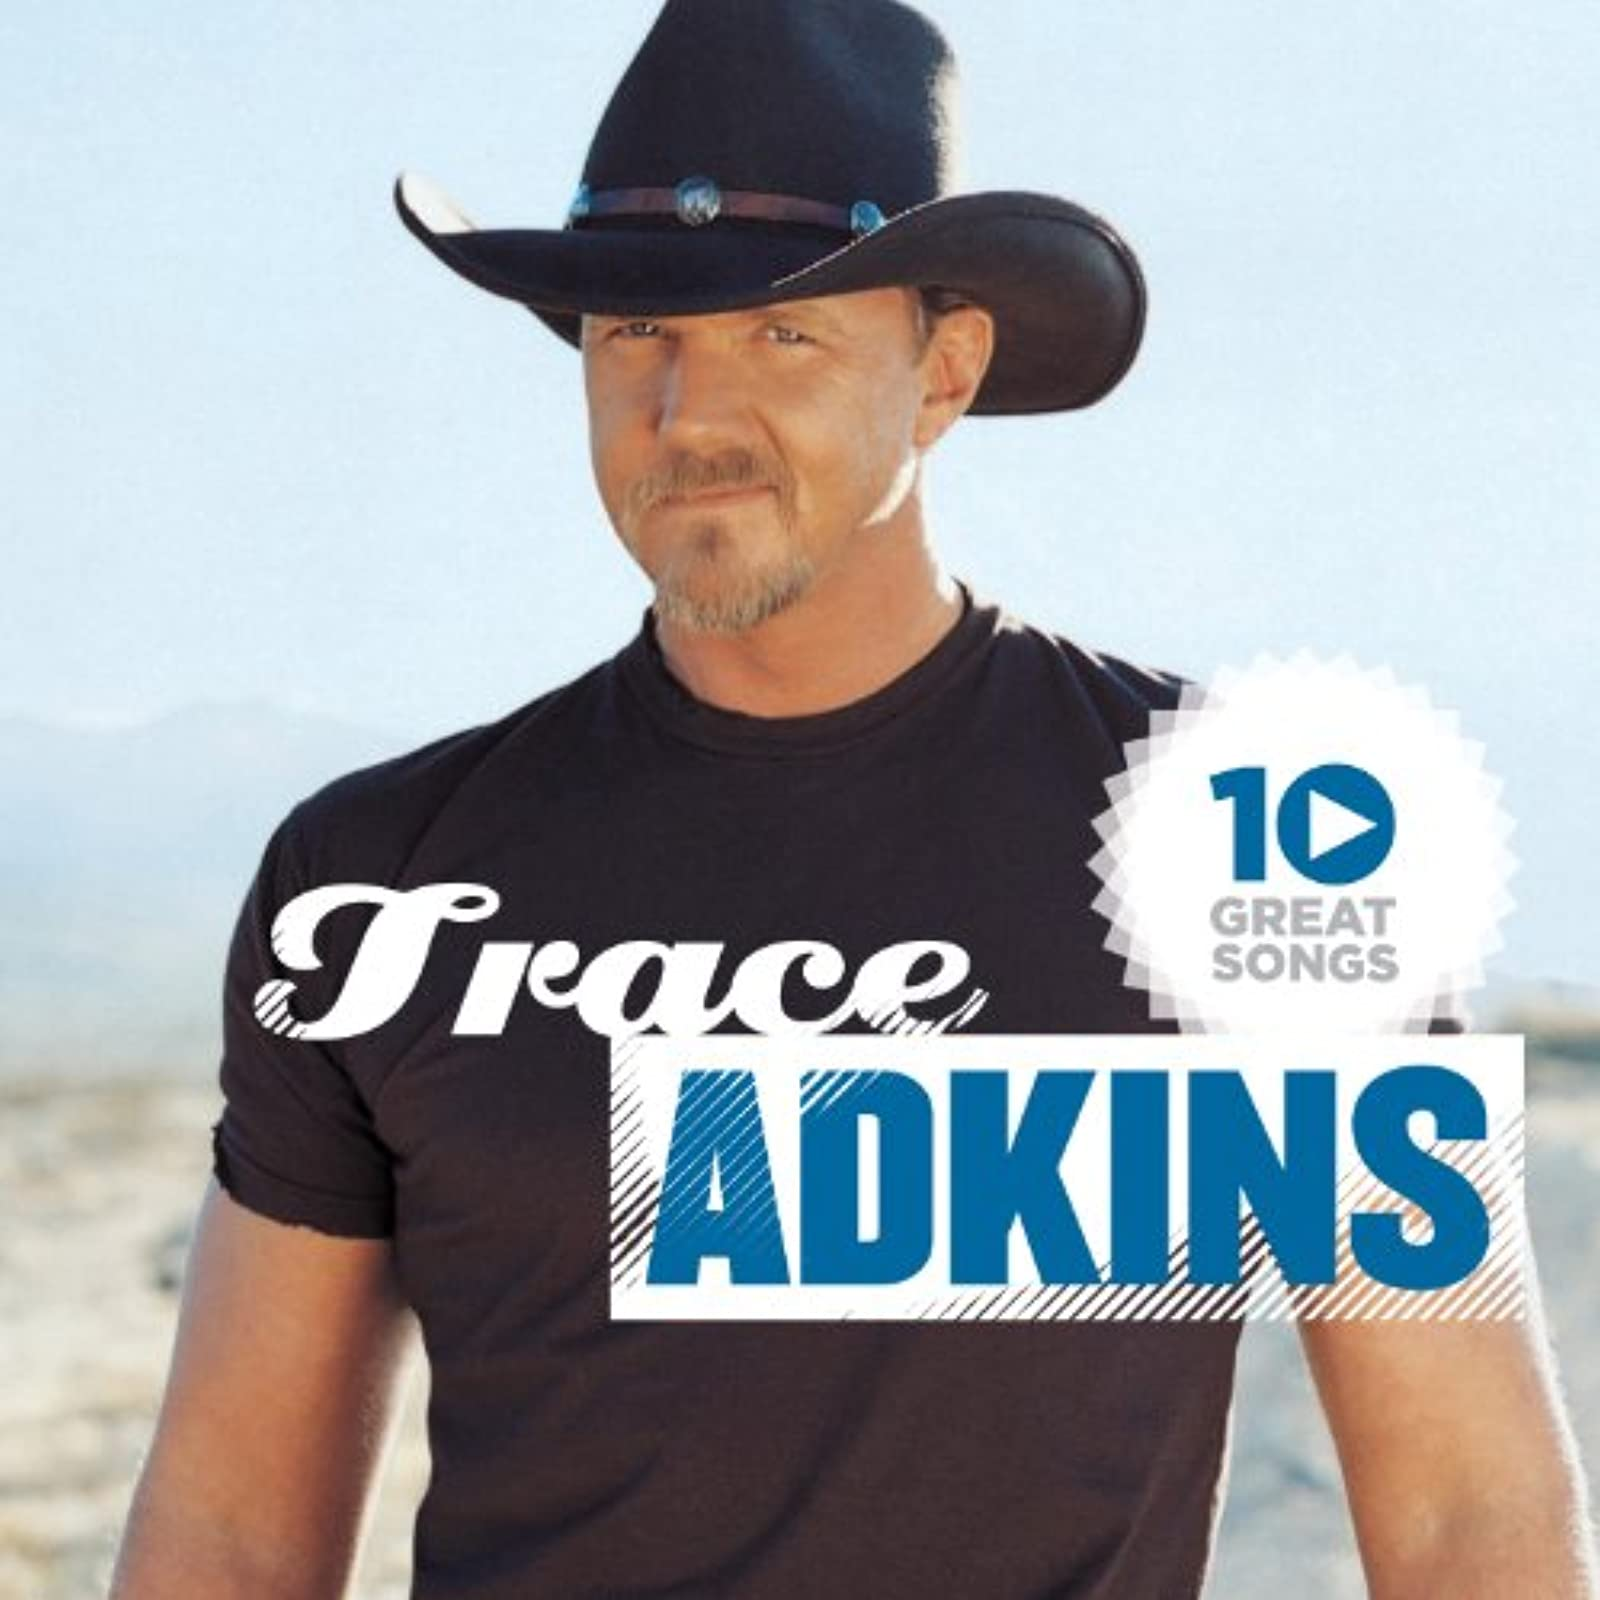 10 Great Songs By Trace Adkins On Audio CD Album 2012